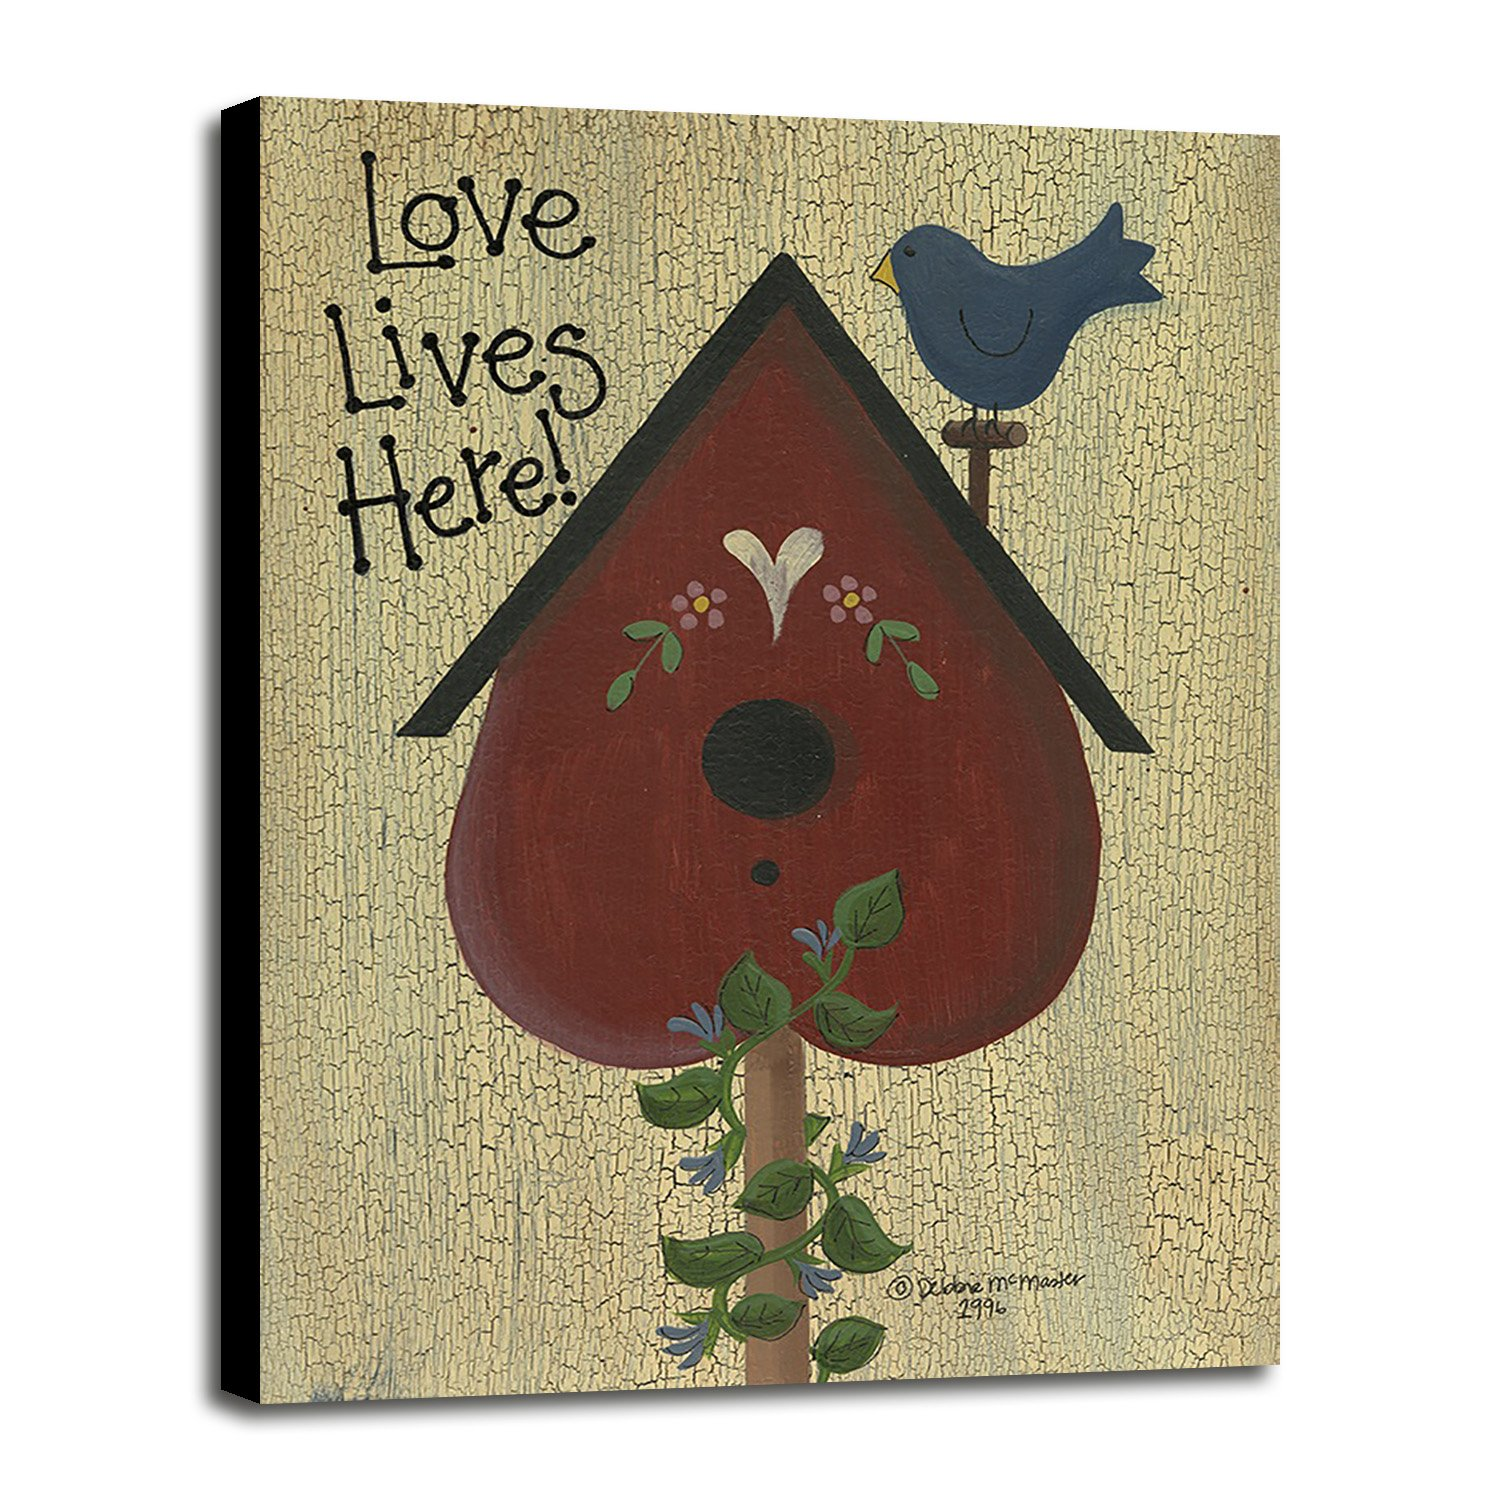 Love Lives Here! Framed Print 34.29''x25.00'' by Debbie McMaster